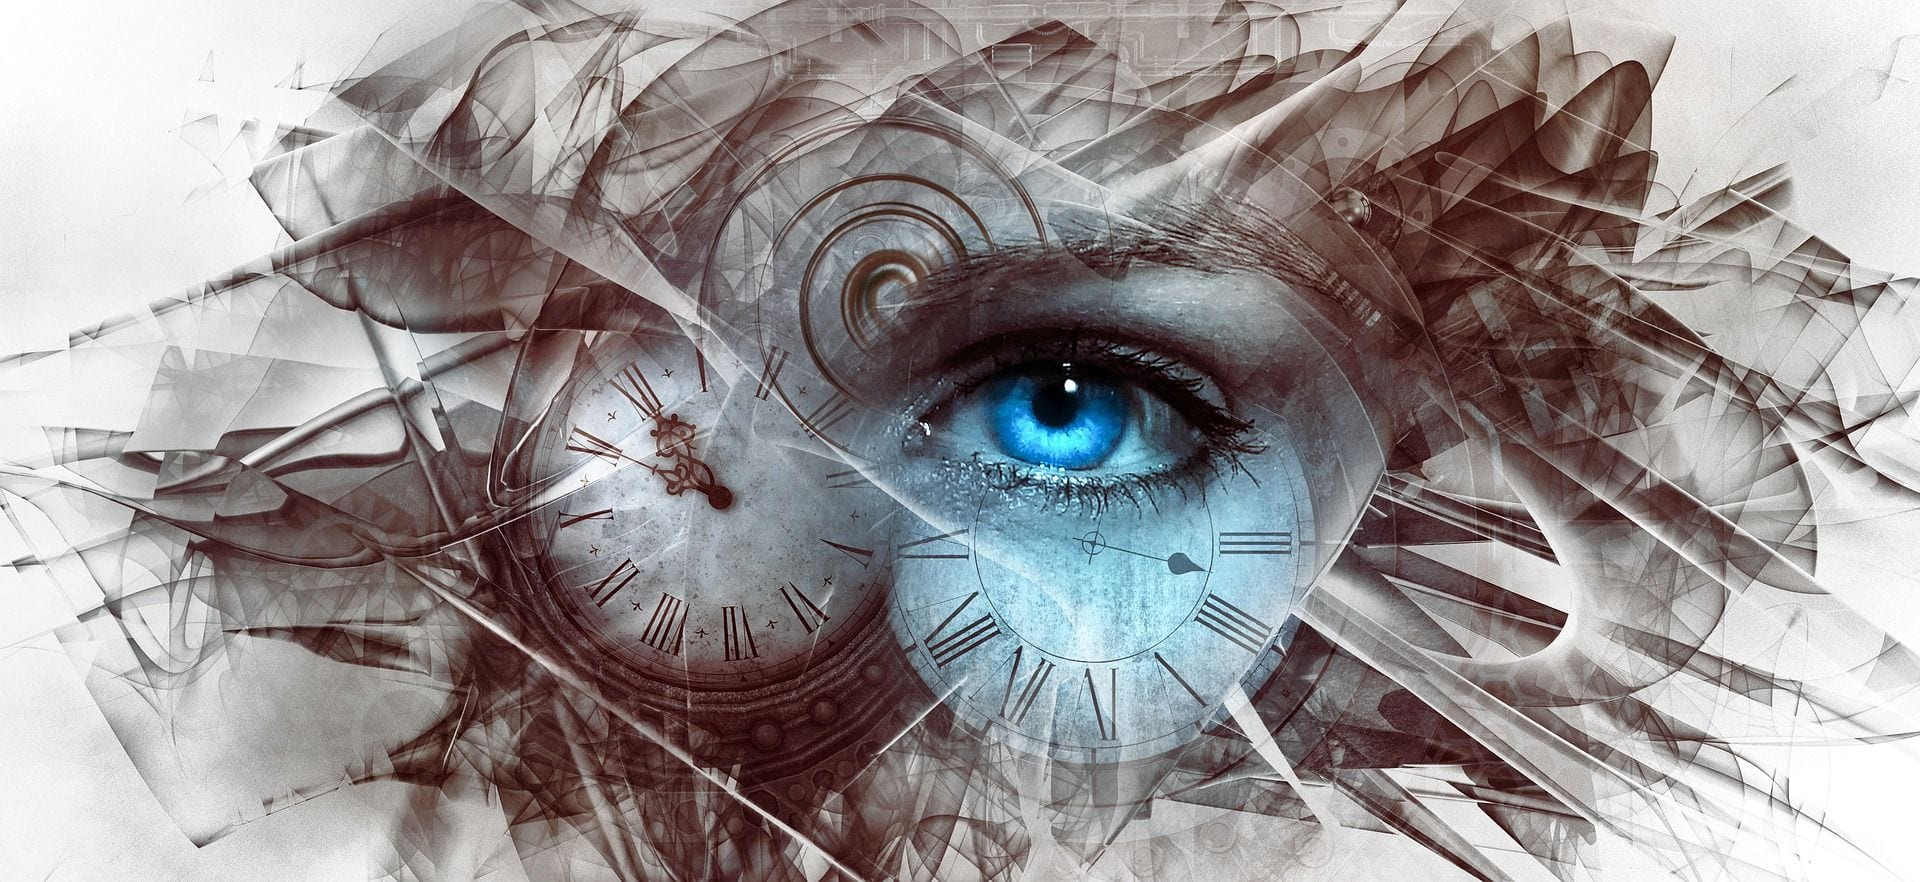 Abstract art depicting a human eye in the center of distorted clocks inferring a link to the alter conscious state of mind.